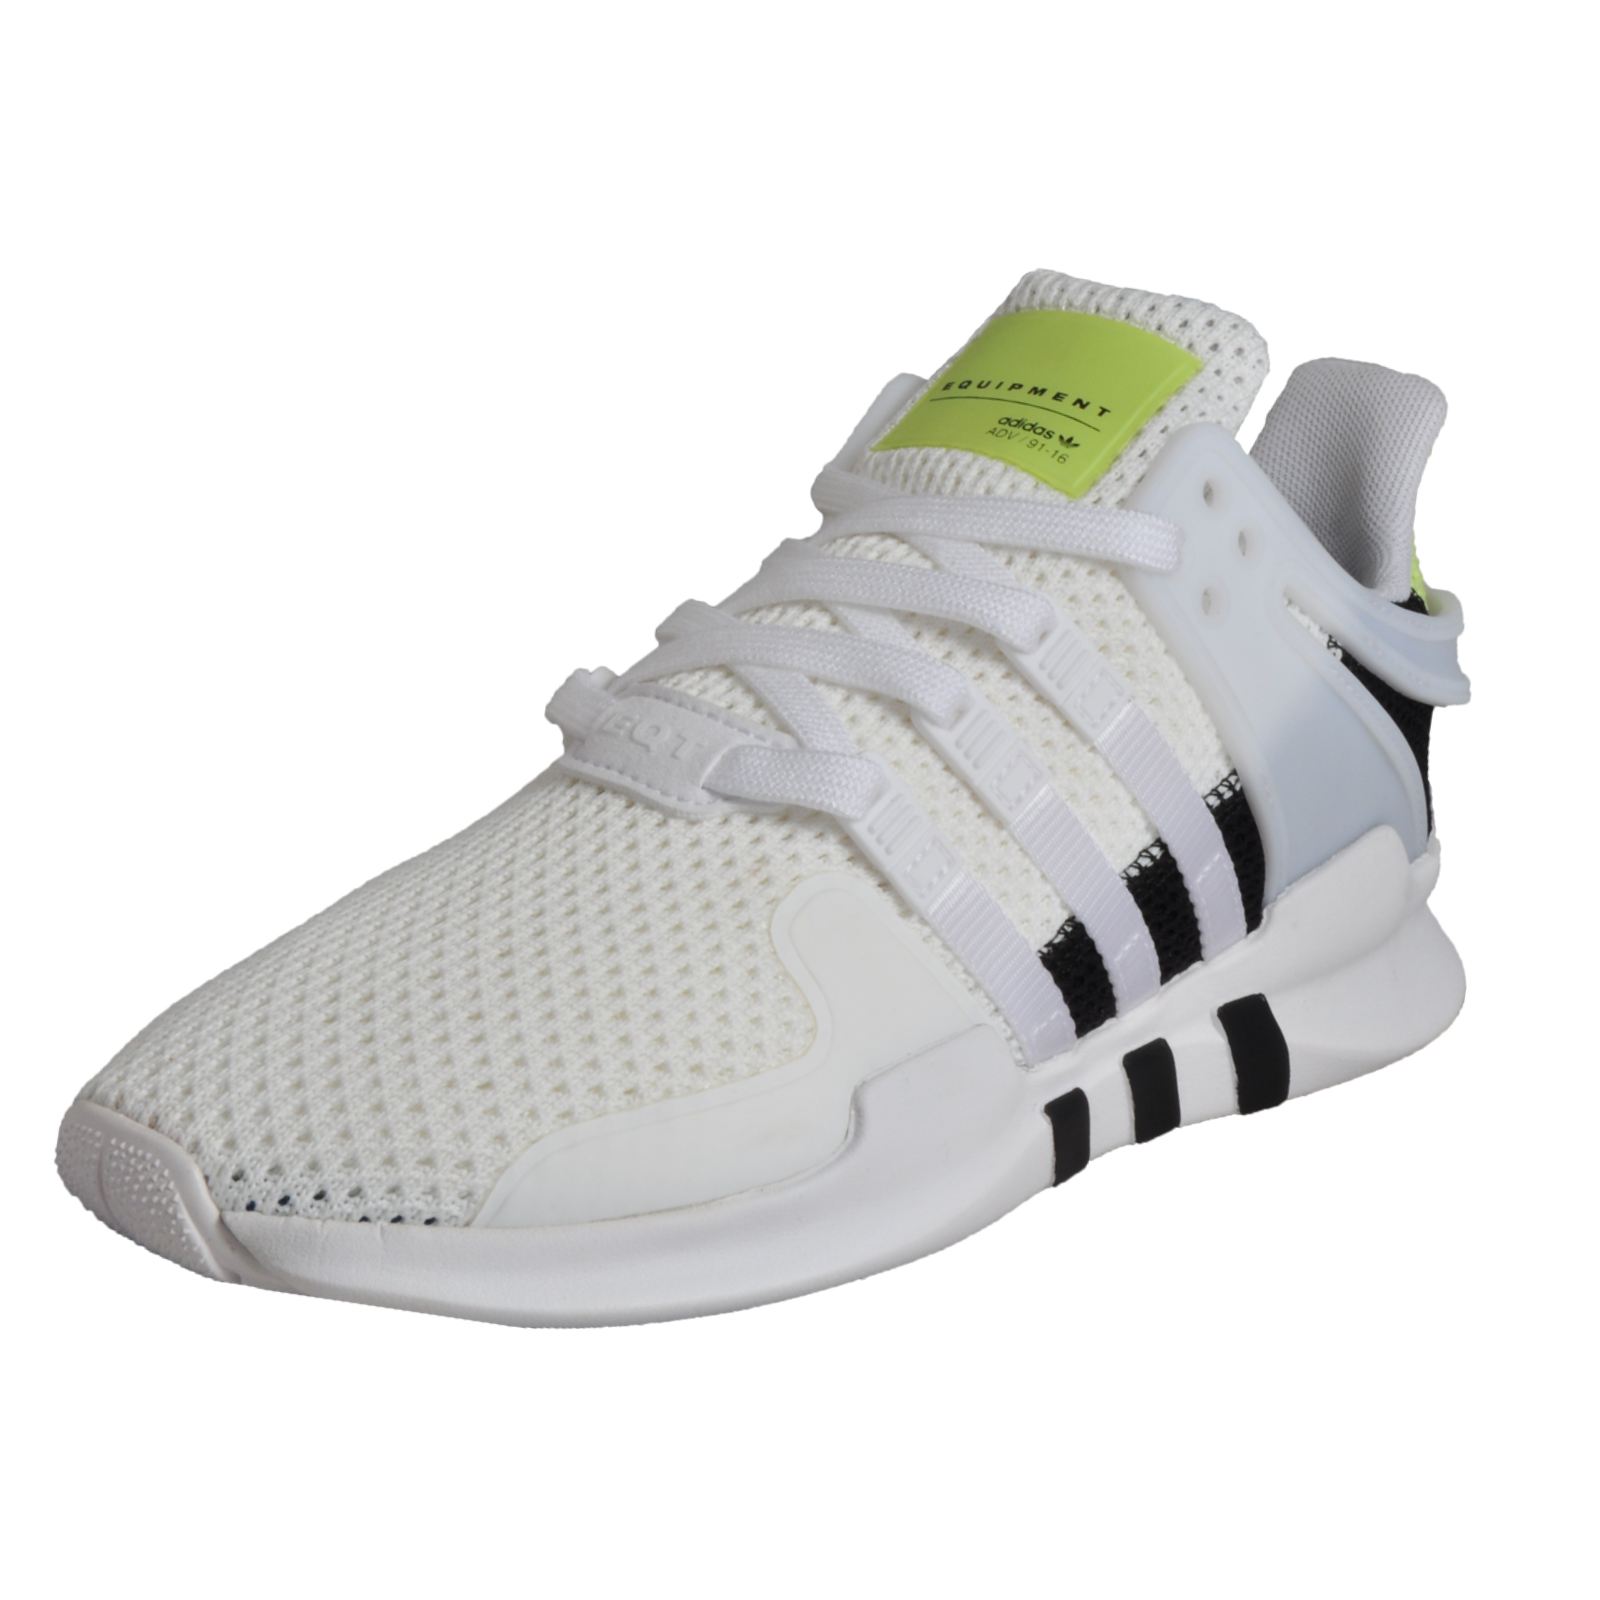 279dee30413d Details about Adidas Originals EQT Support ADV Men s Classic Retro Fashion  Trainers White